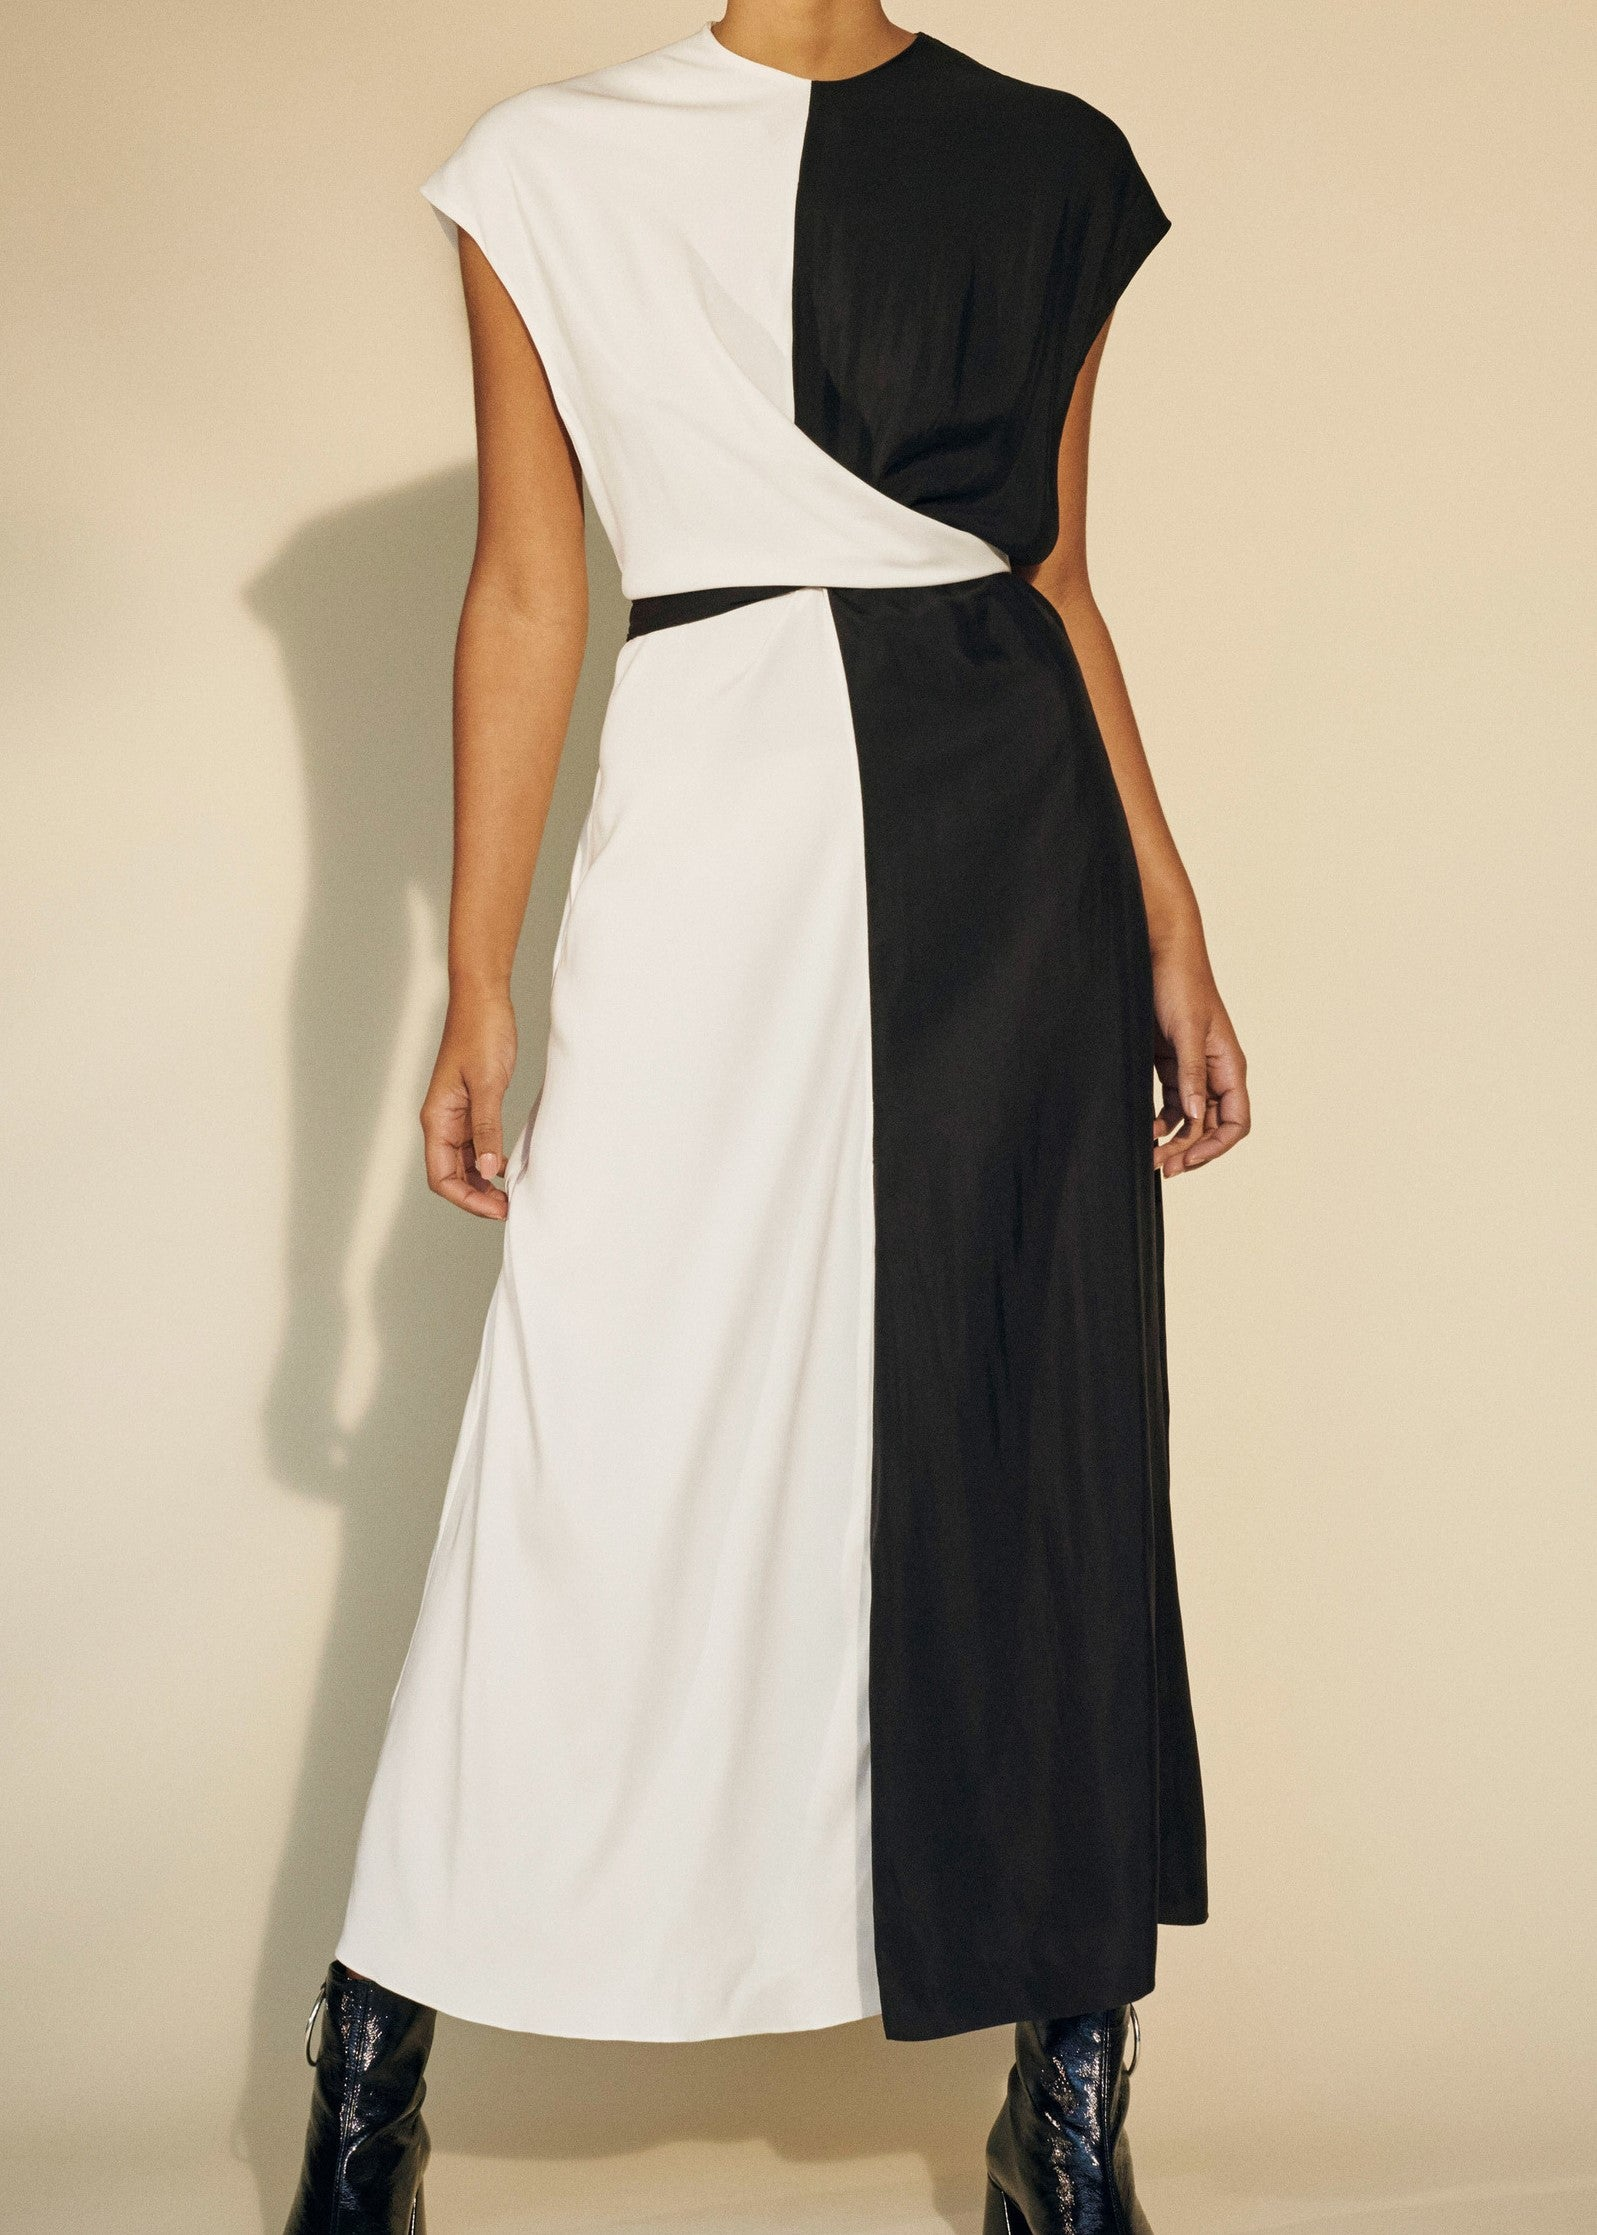 Paper London Tide dress in black and ivory